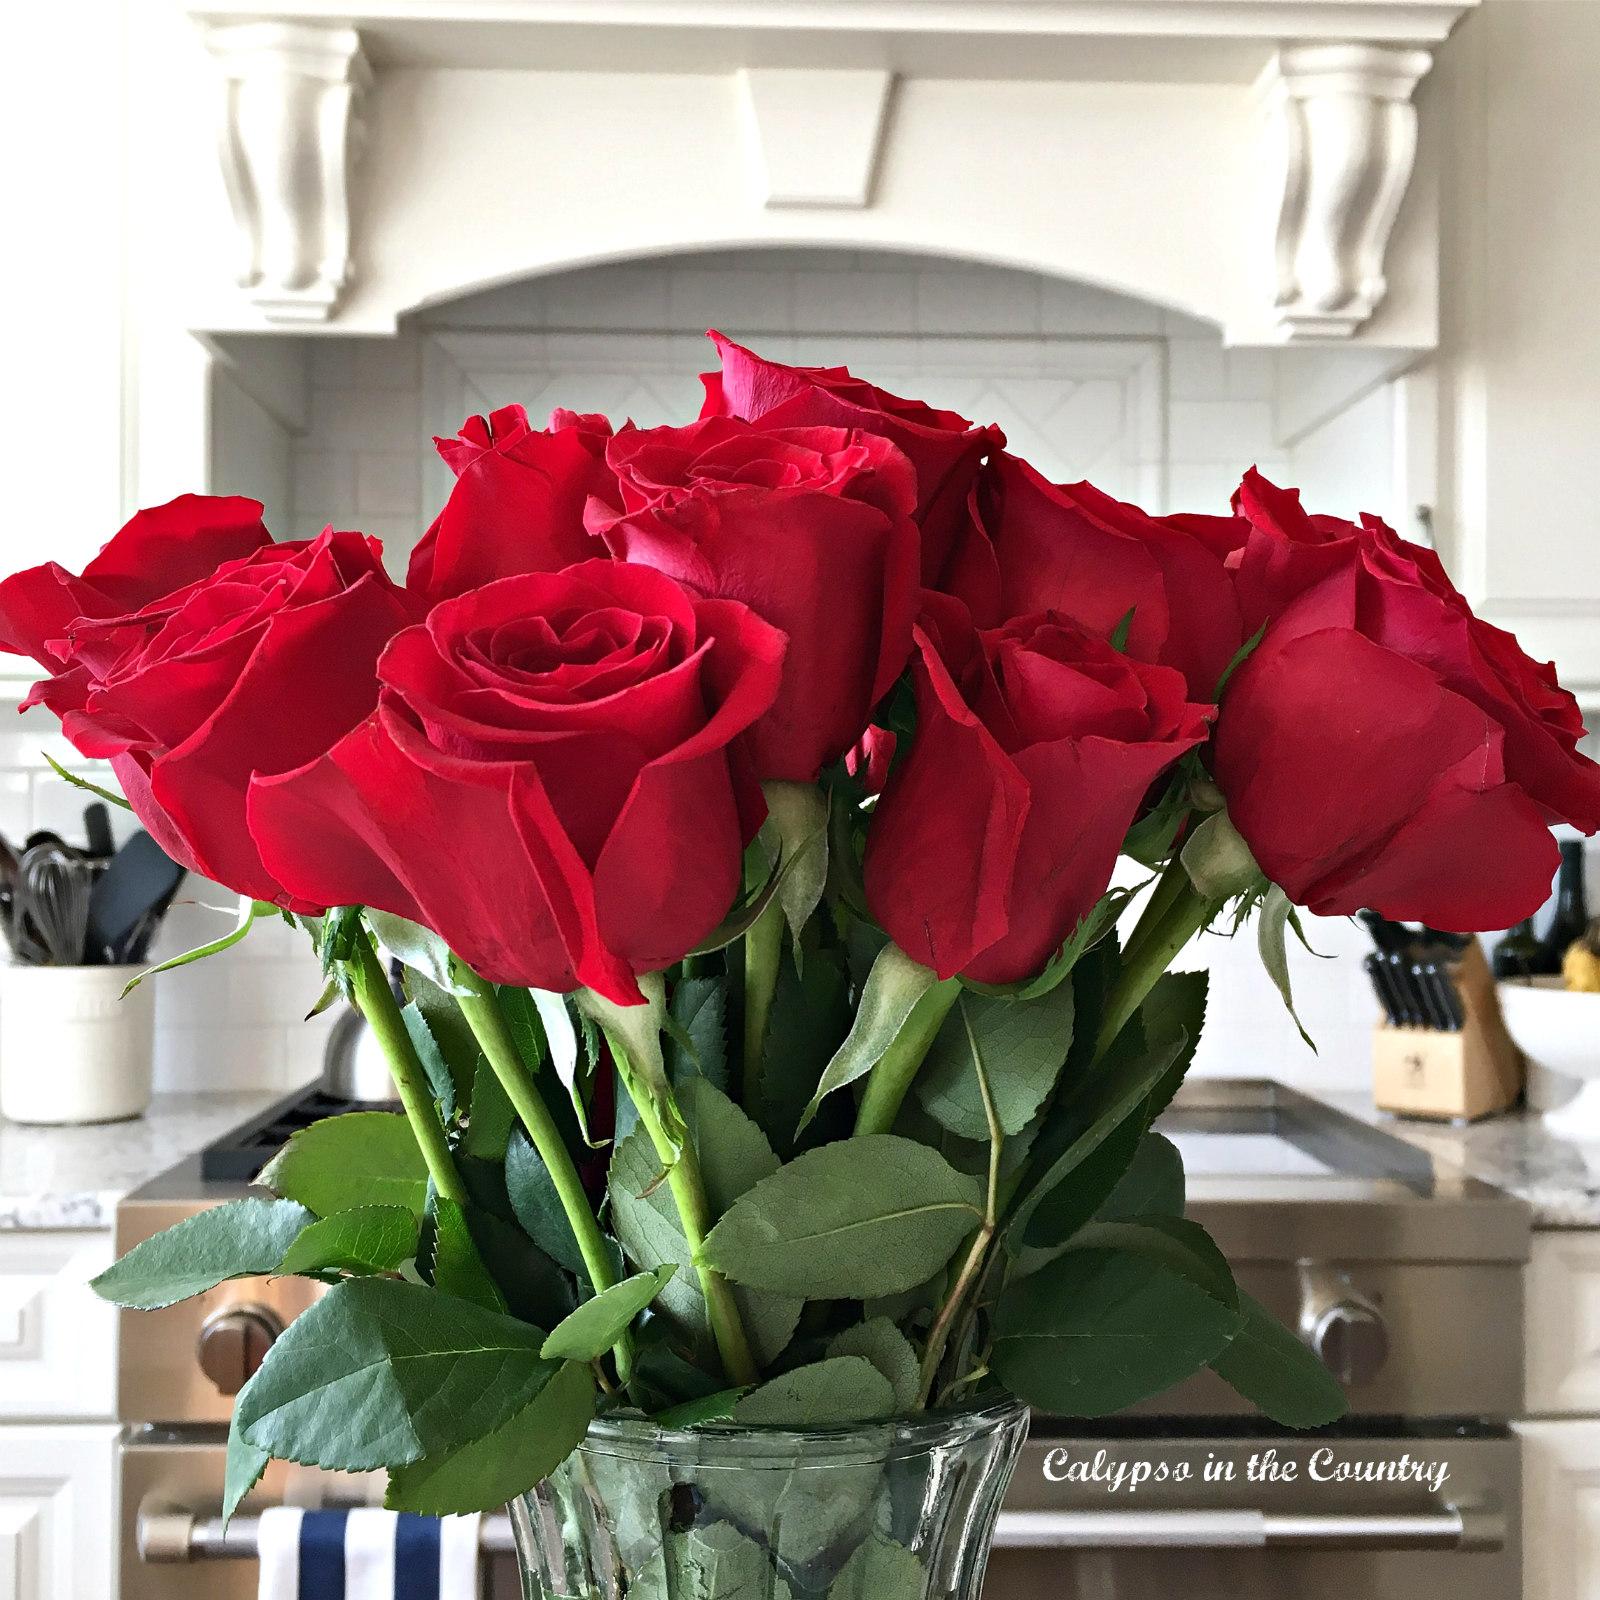 Red Roses for Valentine's Day - Decorating with Flowers